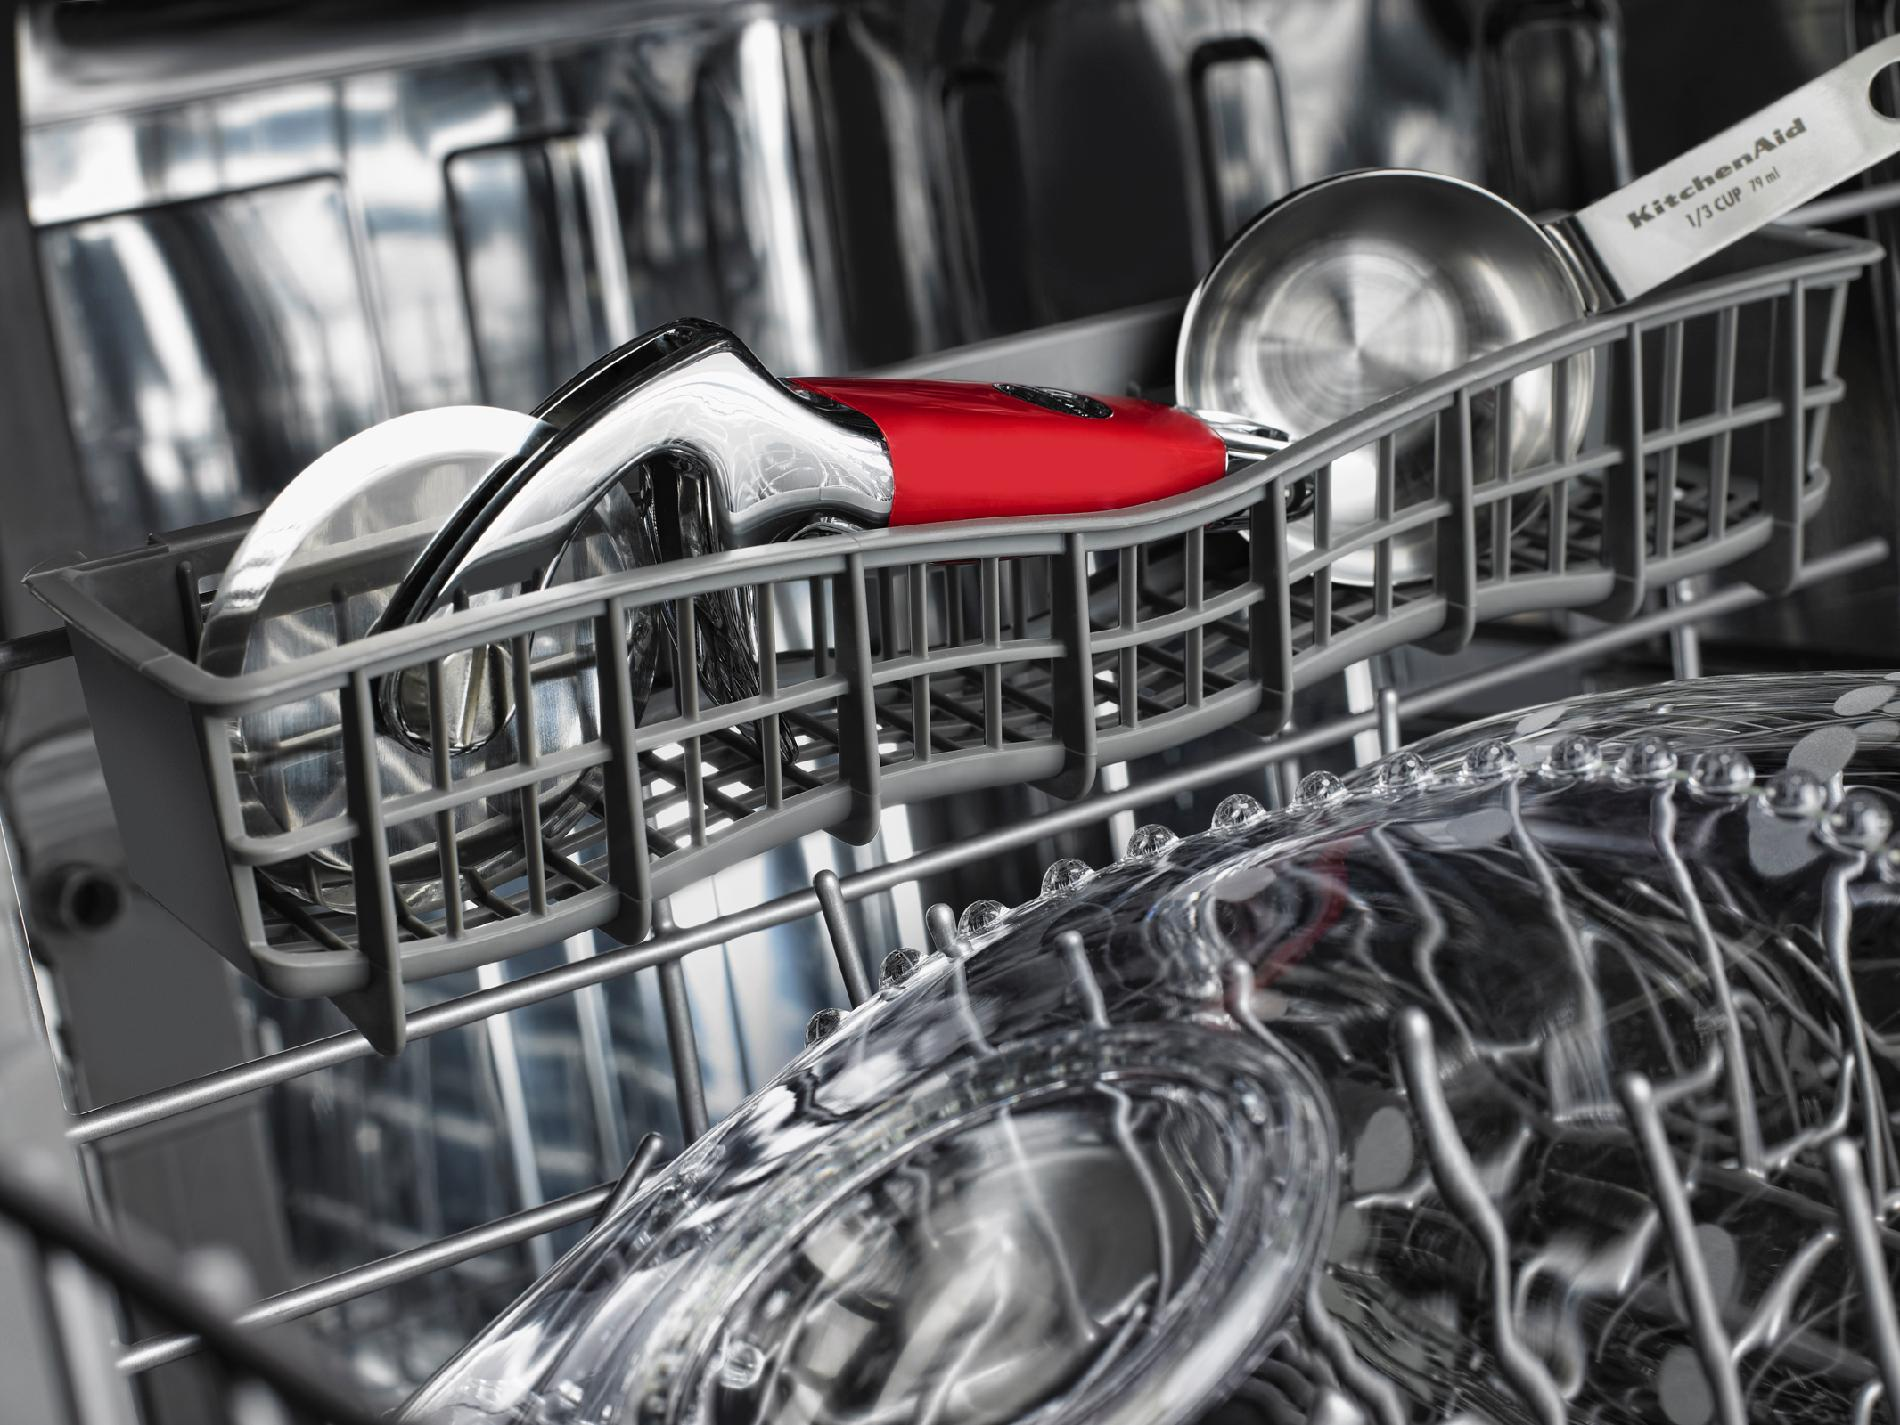 KitchenAid 24-in. Built-in Dishwasher w/ ProScrub® Option and Concealed Controls - Stainless